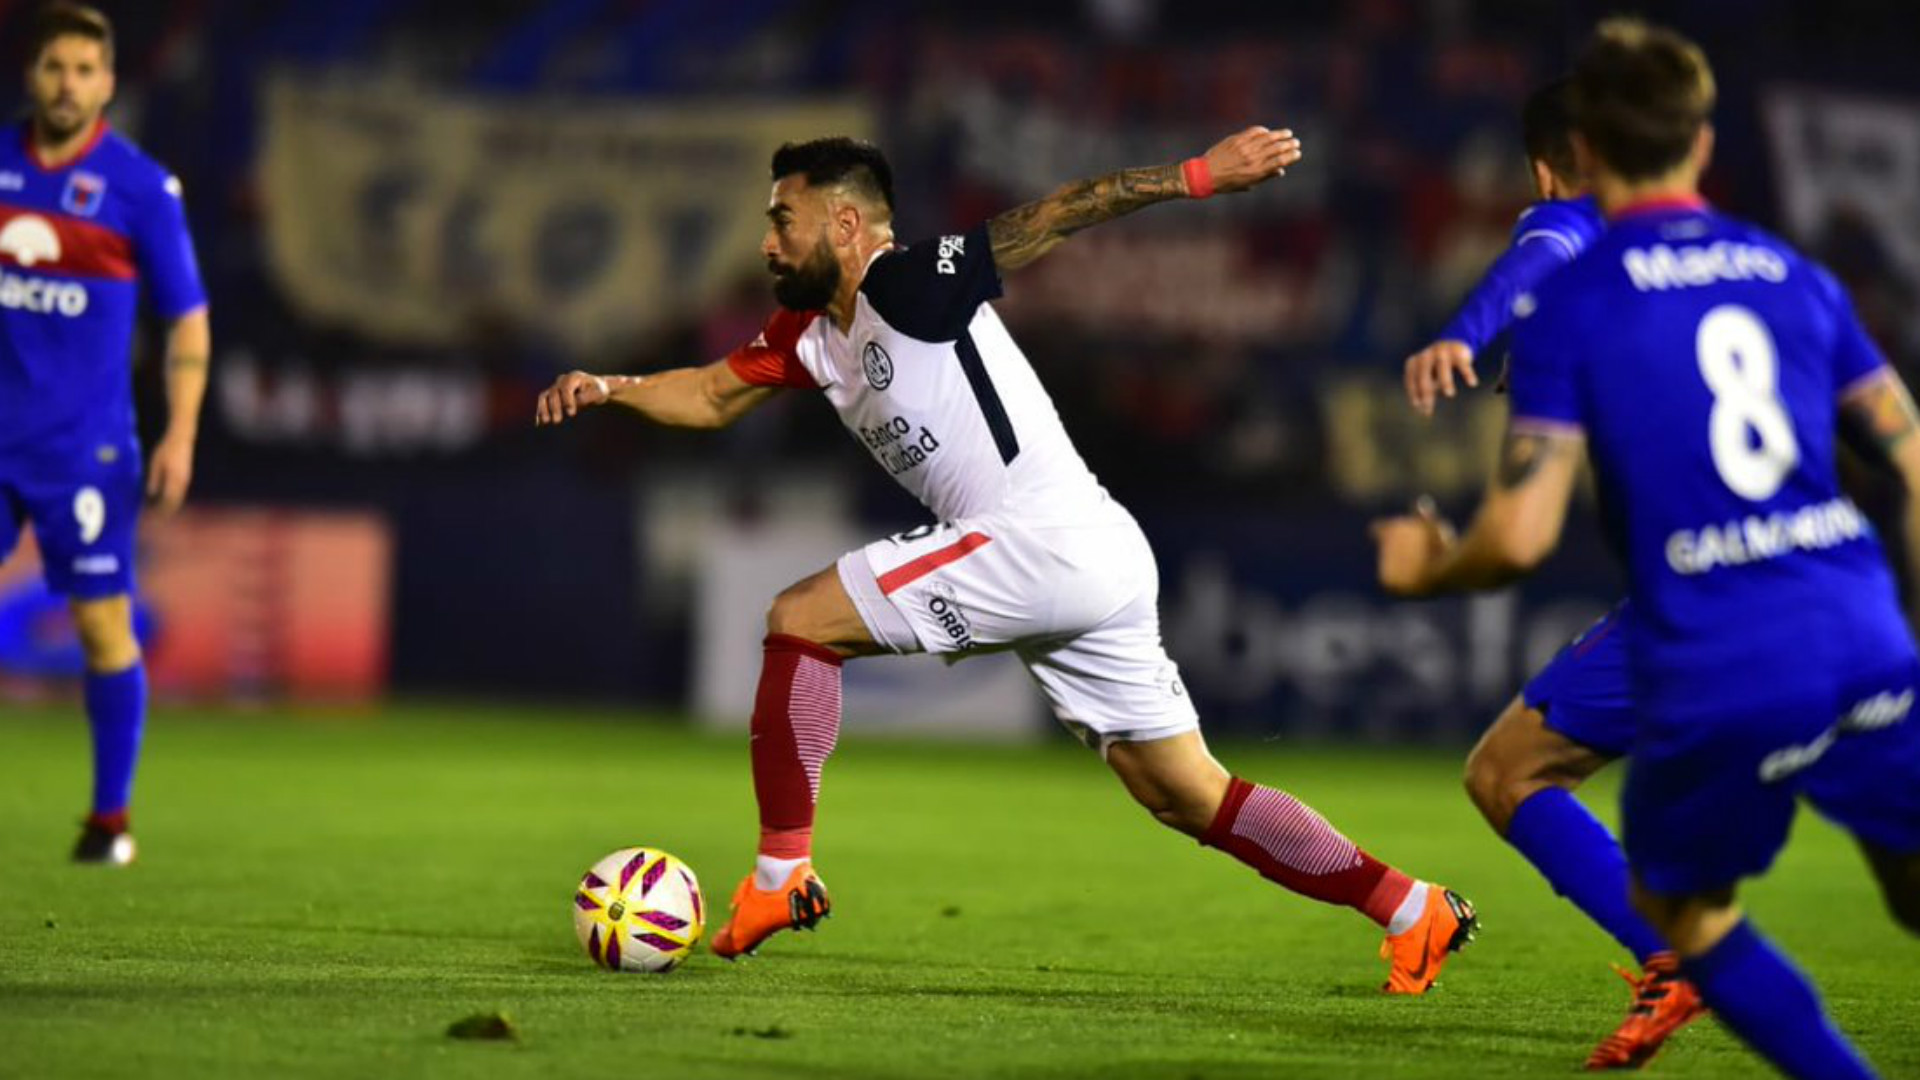 Tigre 2-2 San Lorenzo, for the Superliga: goals, summary, videos and statistics